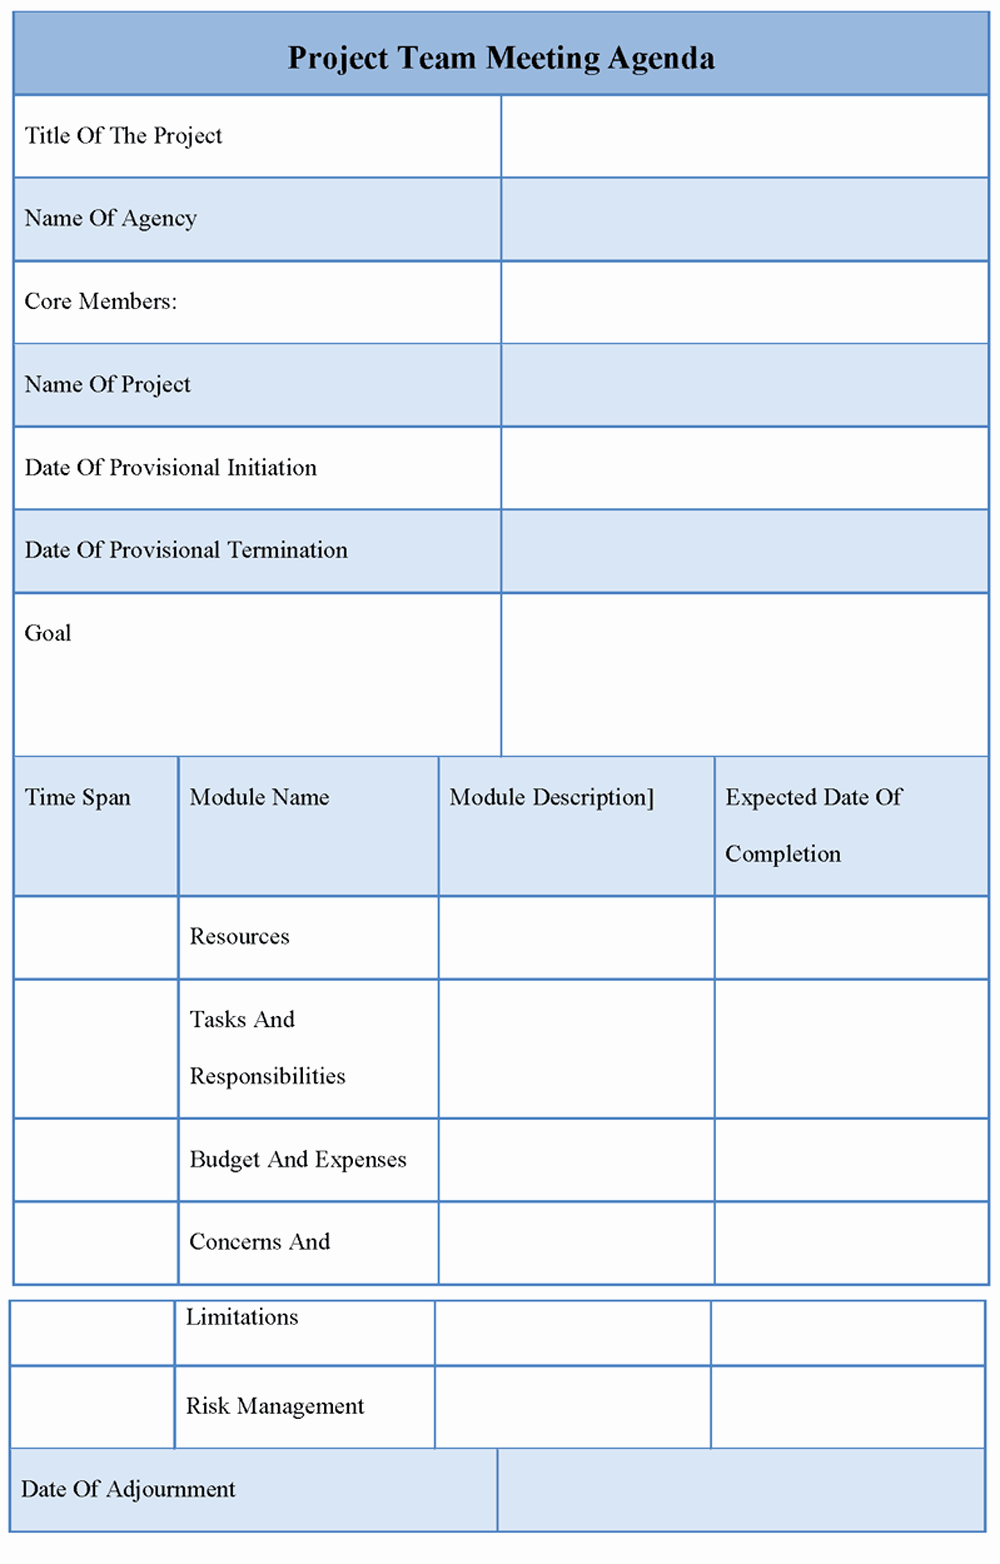 Project Meeting Agenda Template Awesome Agenda Template for Project Team Meeting Template Of